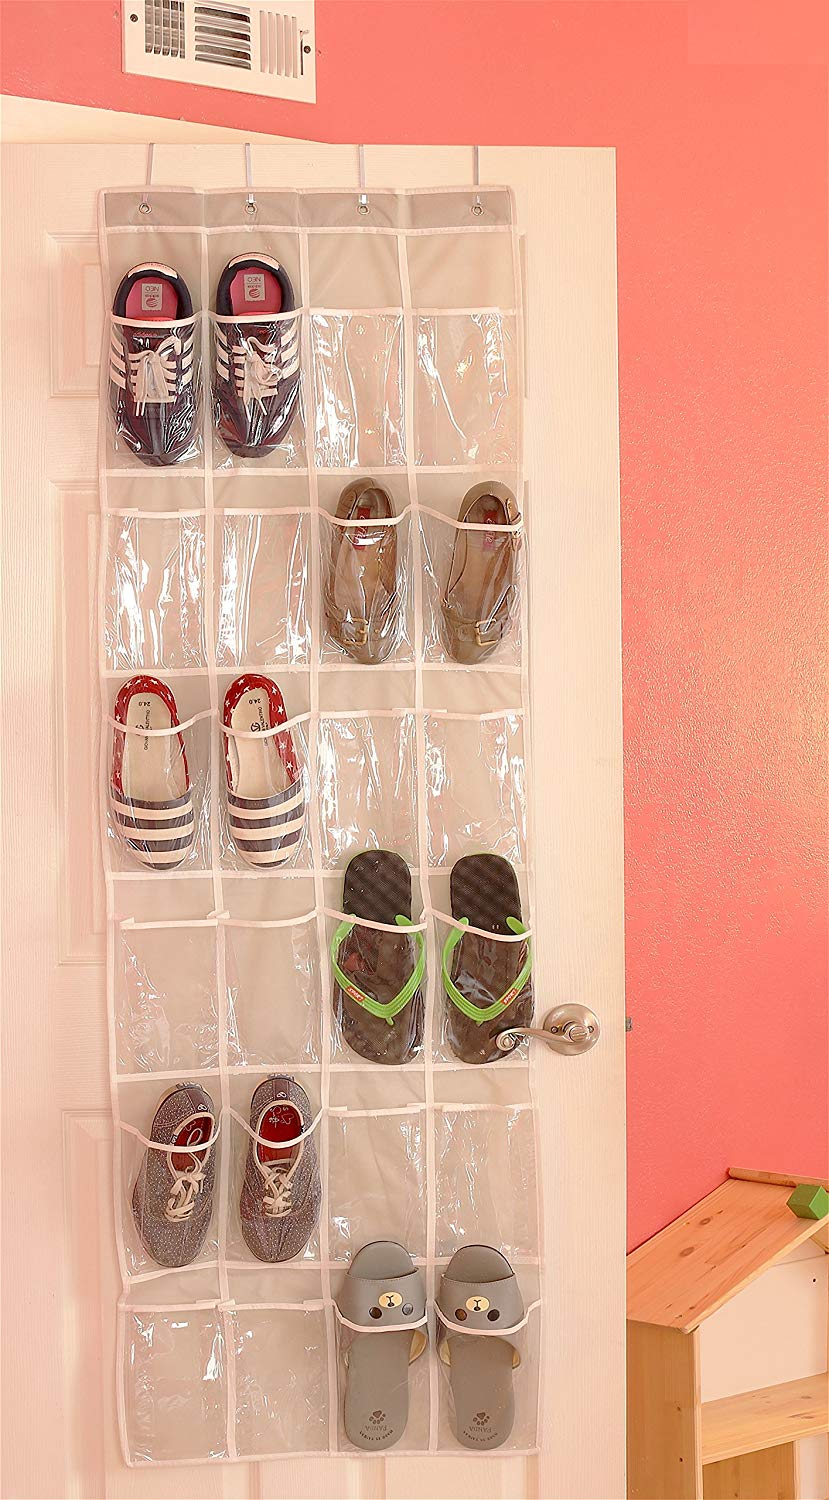 24 Pockets – Simple Houseware Crystal Clear Over the Door Hanging Shoe Organizer